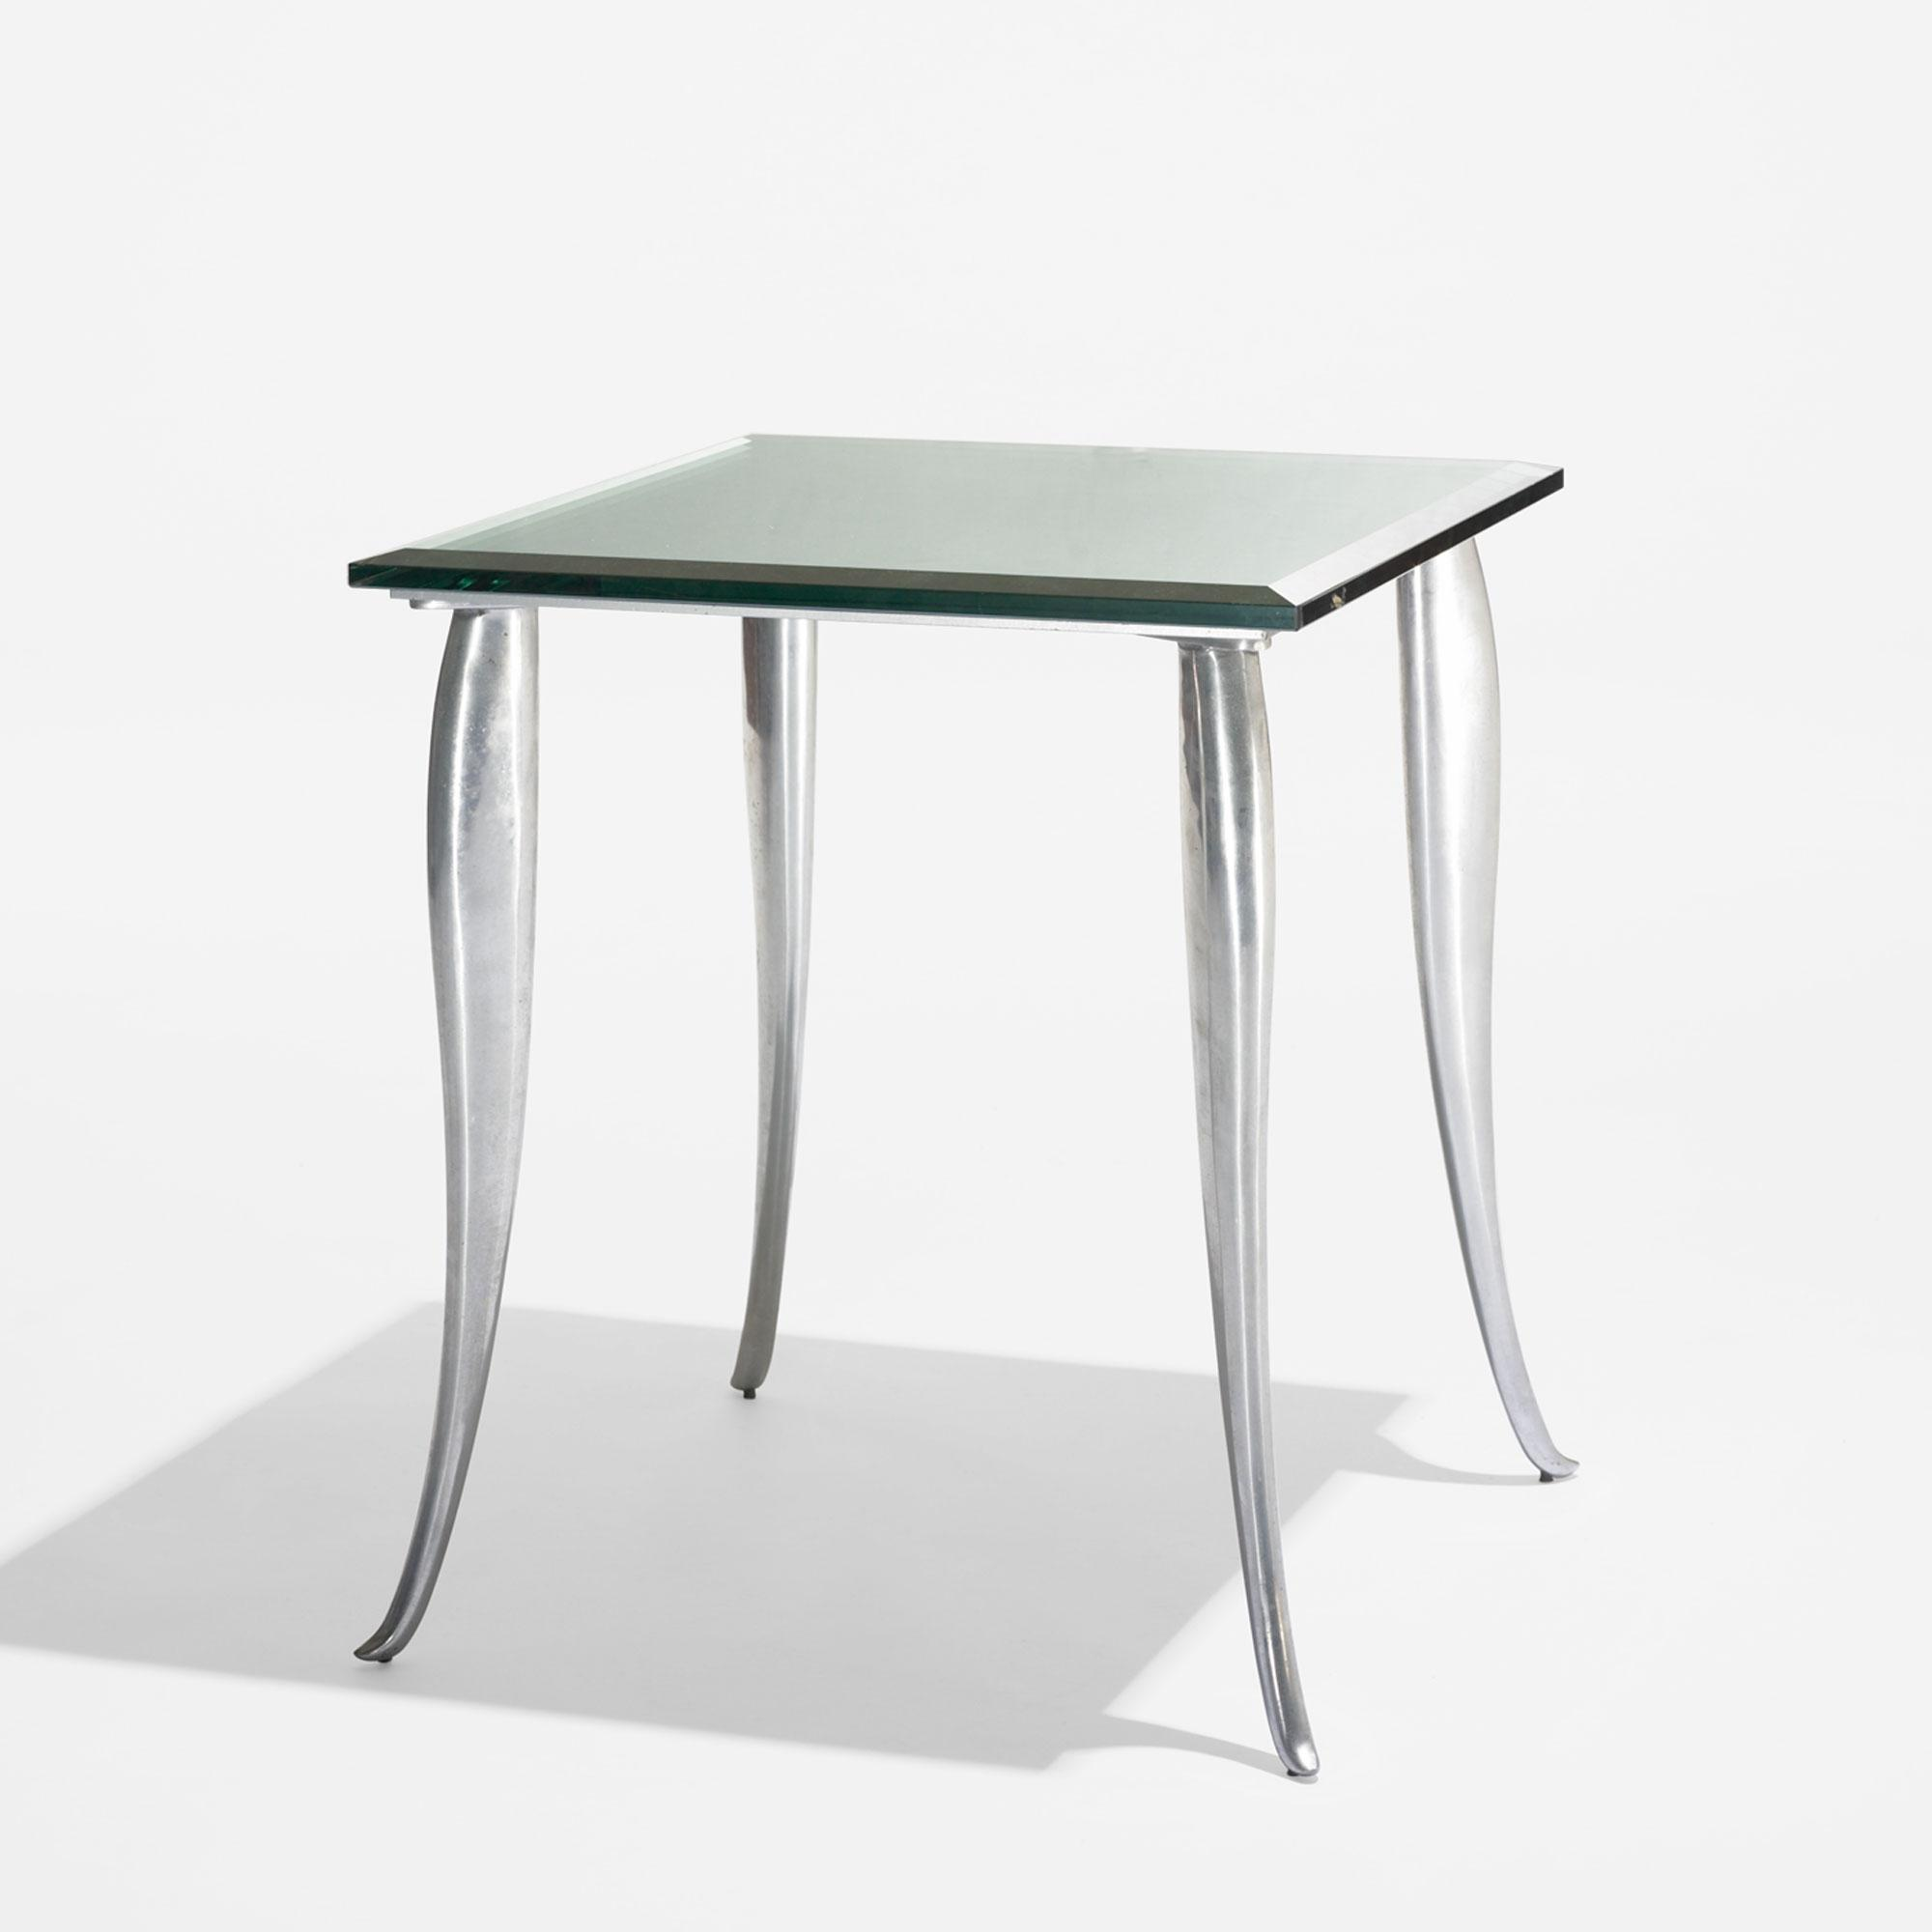 philippe starck prototype table for the royalton hotel. Black Bedroom Furniture Sets. Home Design Ideas